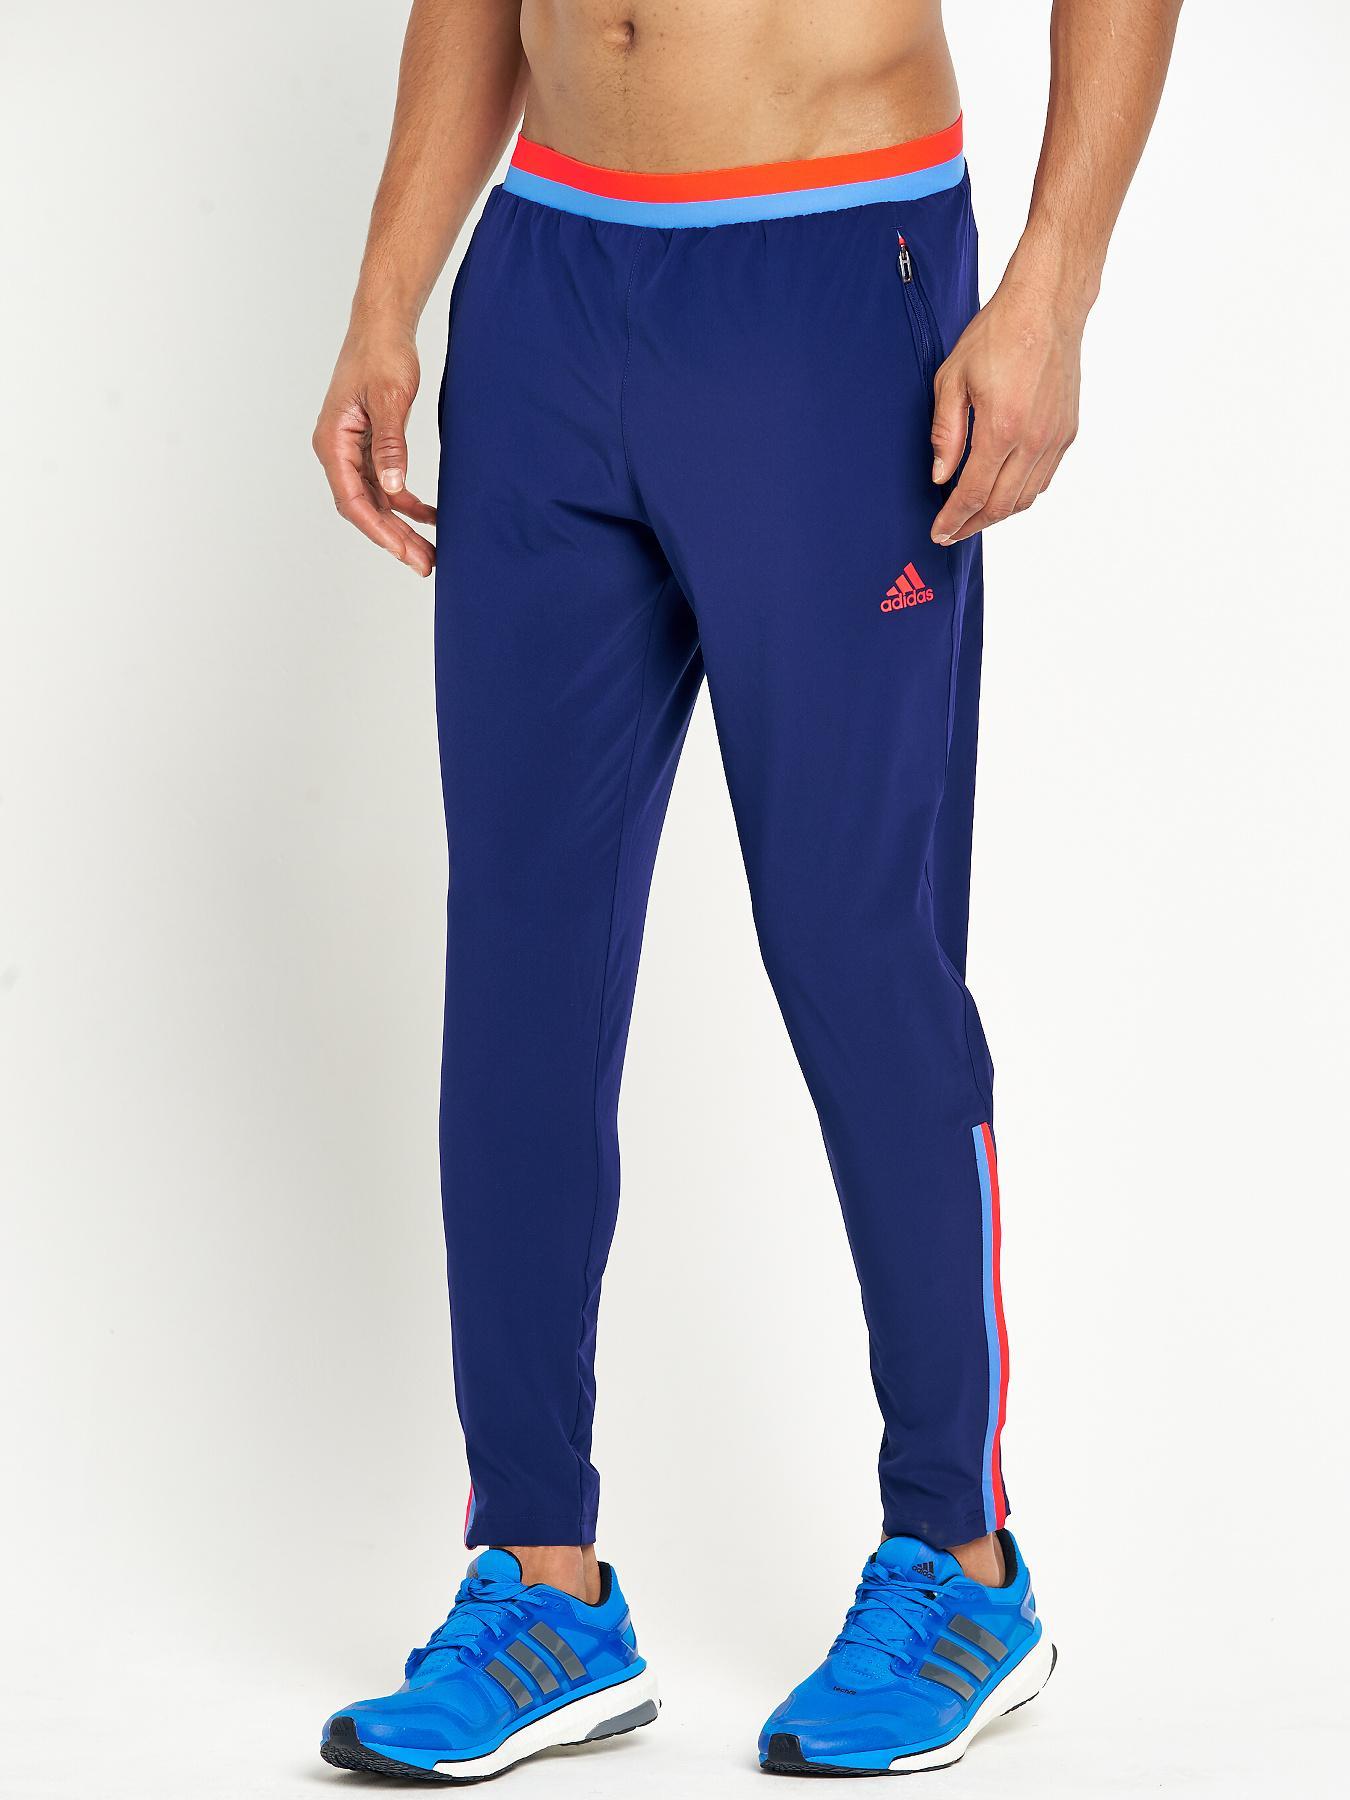 adidas Mens X Silo AZ Training Pants - Navy, Navy